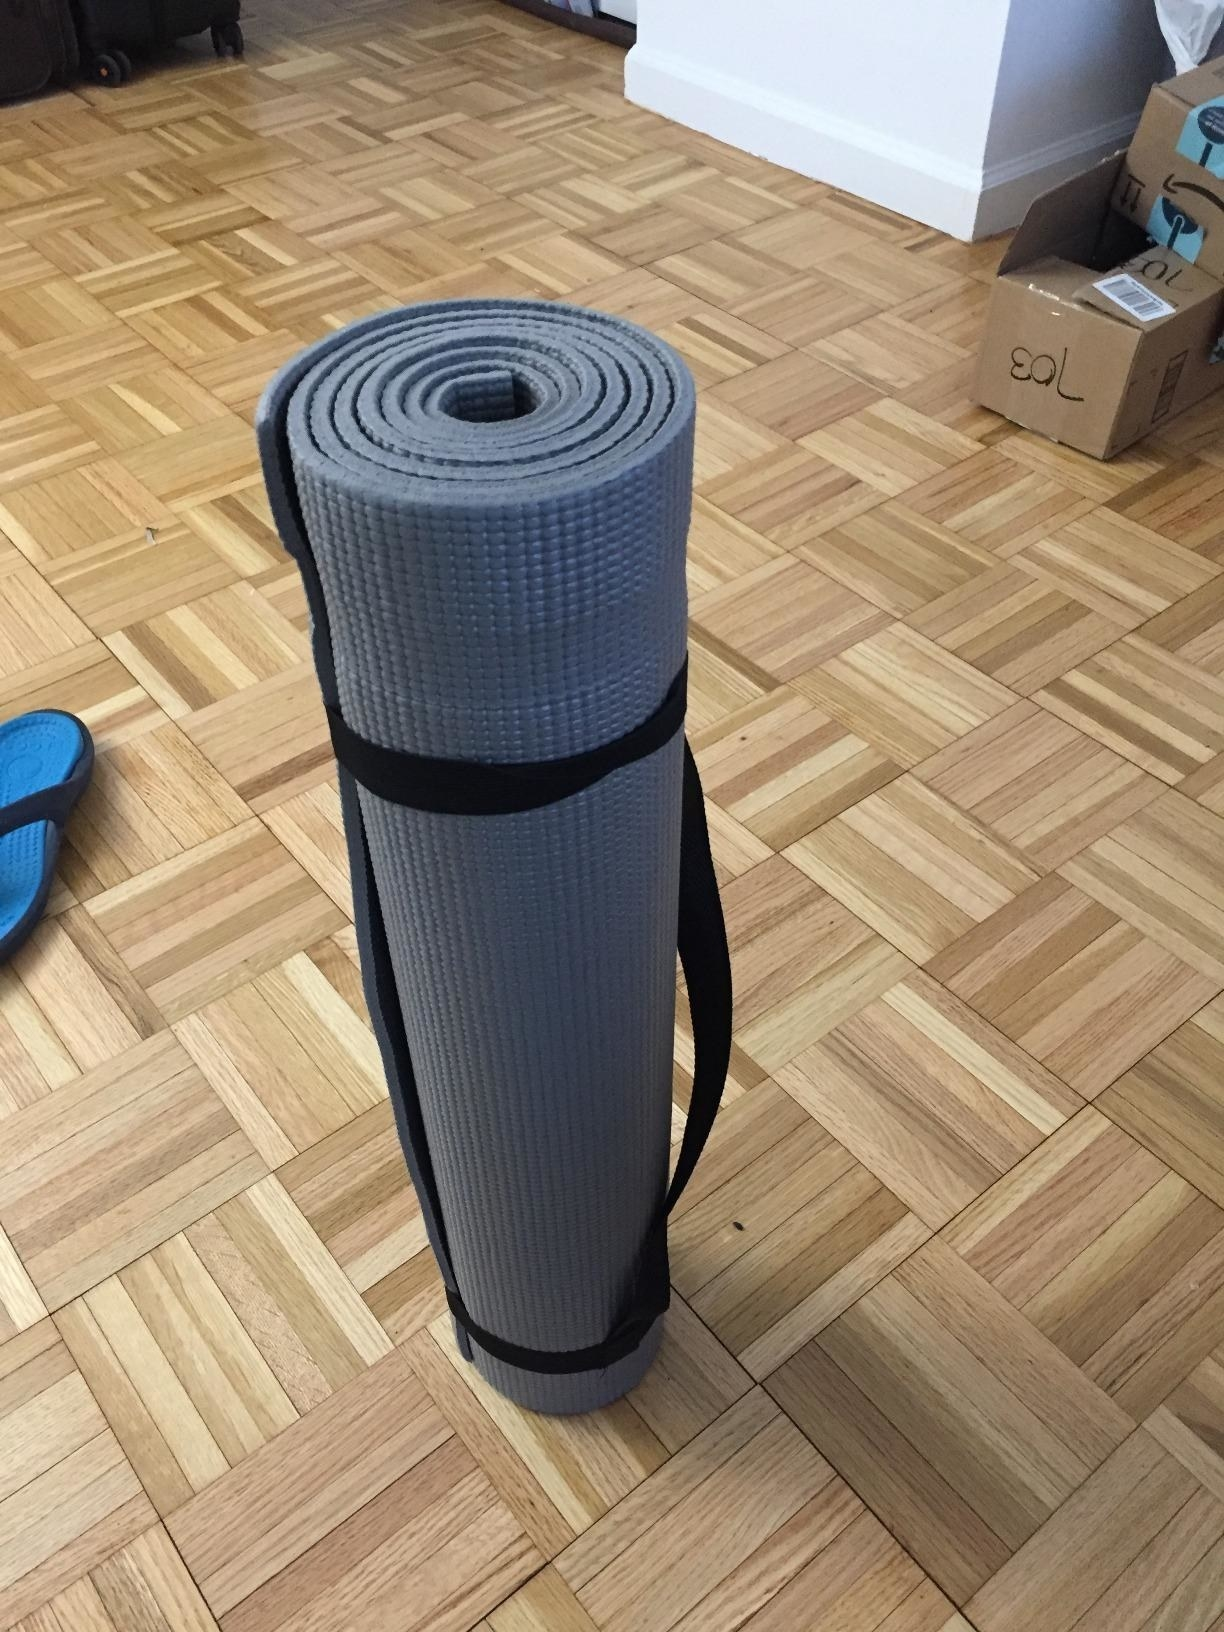 A reviewer showing the yoga mat rolled up and being held in place with the included straps